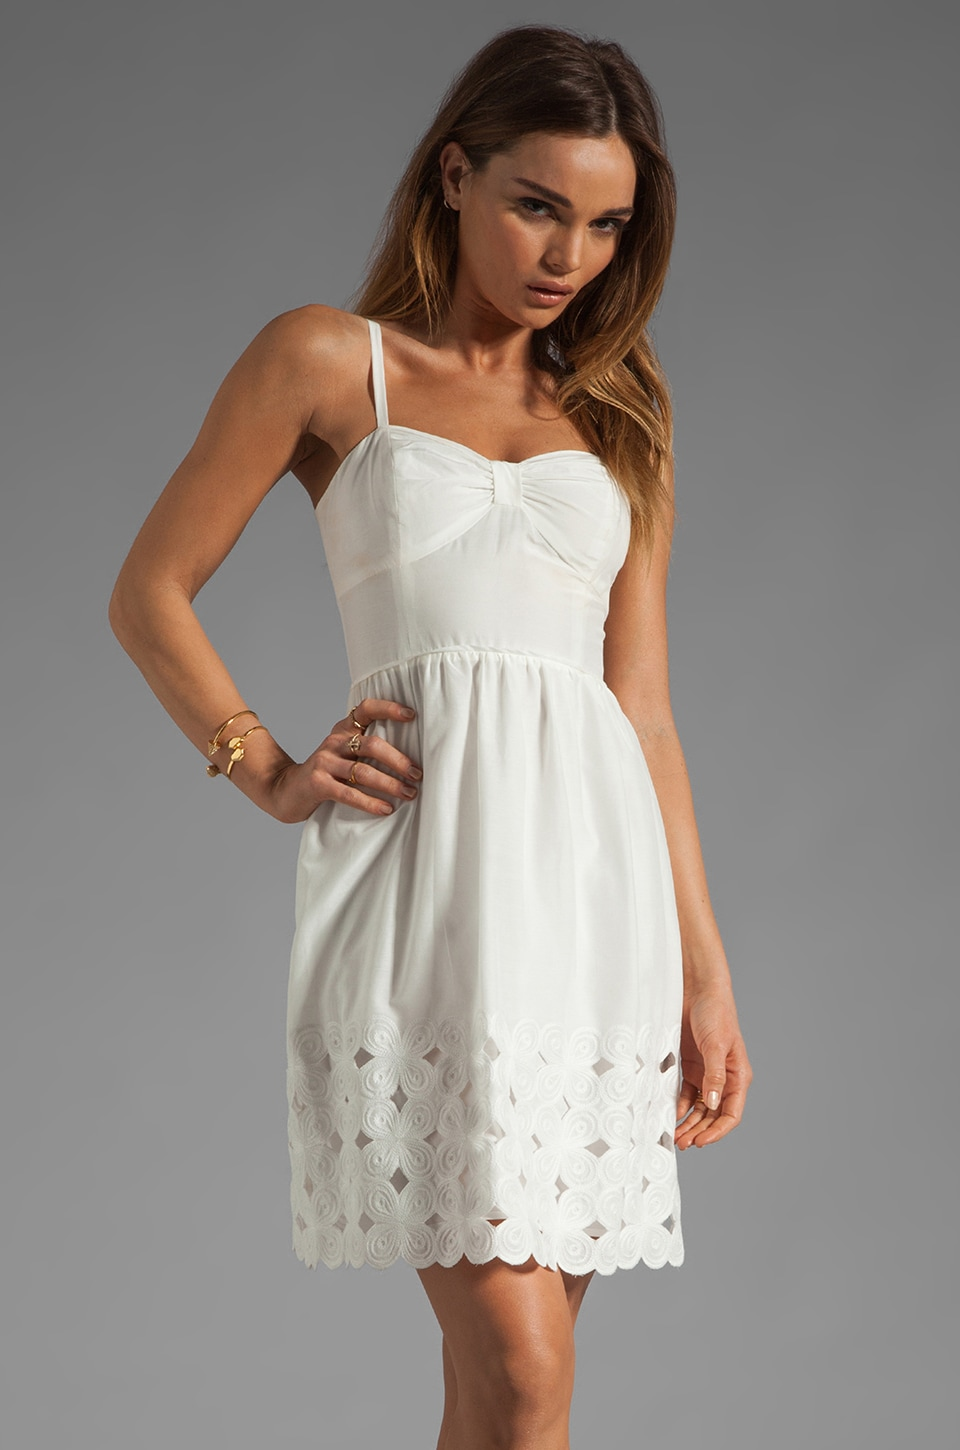 Trina Turk Love Love Dress in White Wash